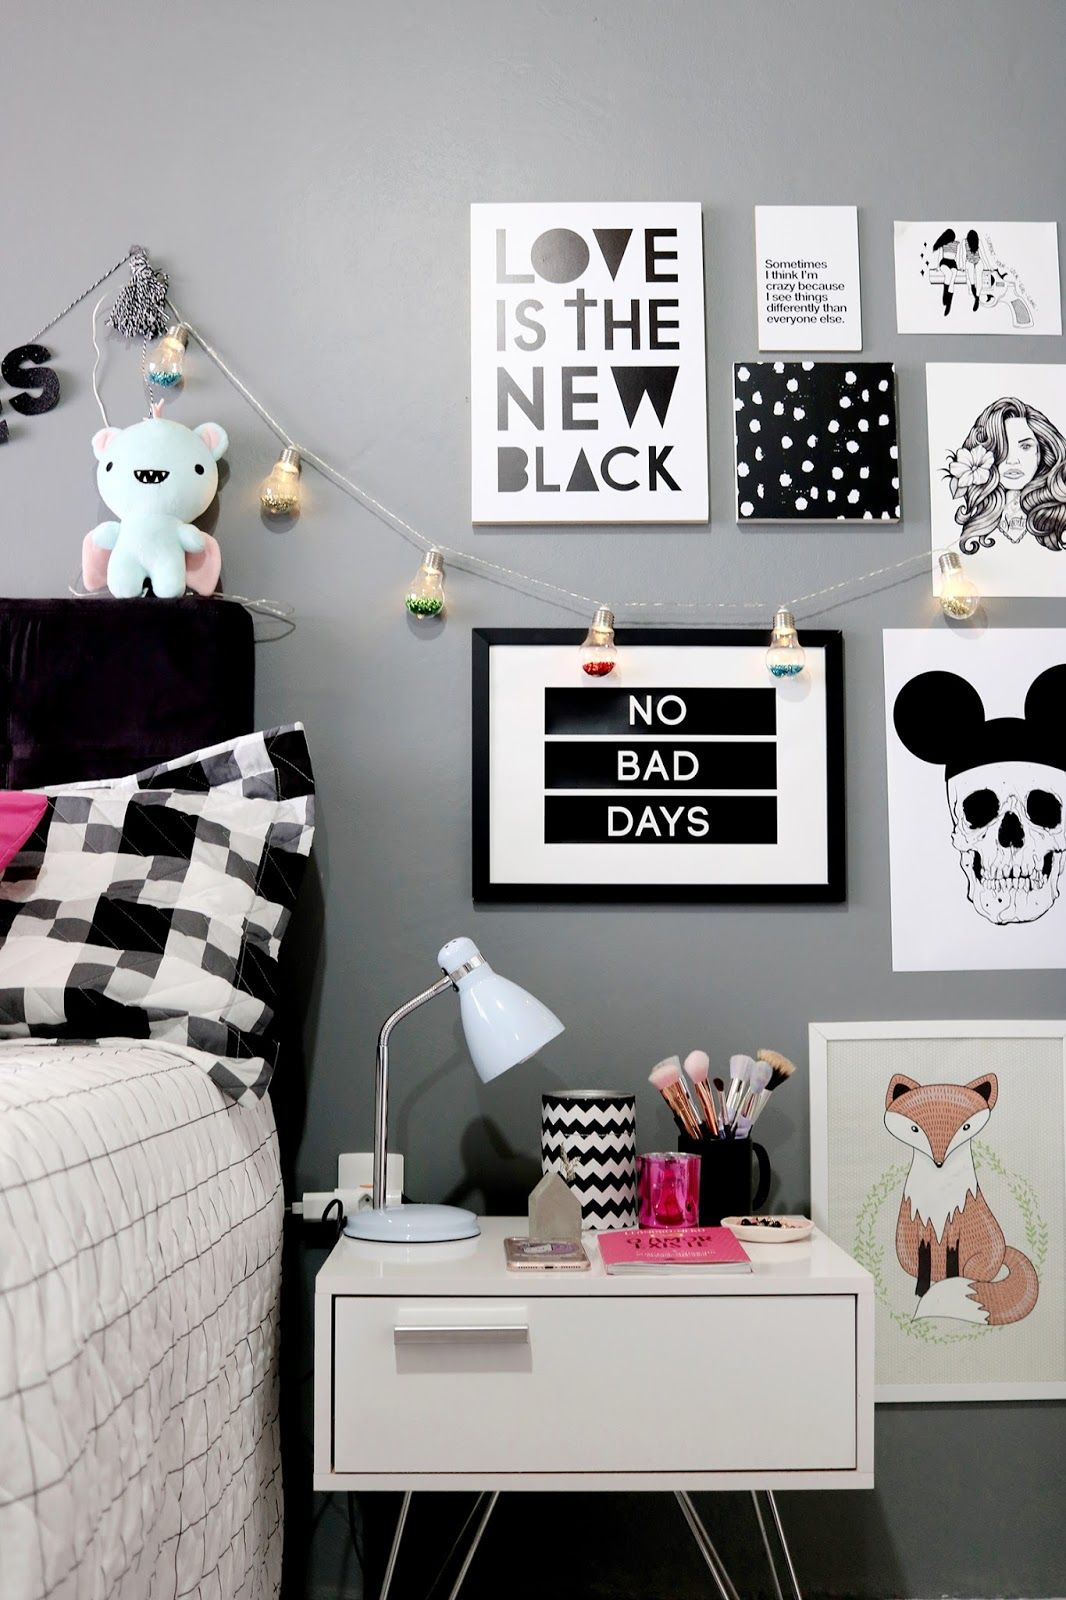 Tour pelo quarto decora o tumblr schlafzimmer ideen for Jugendzimmer tumblr